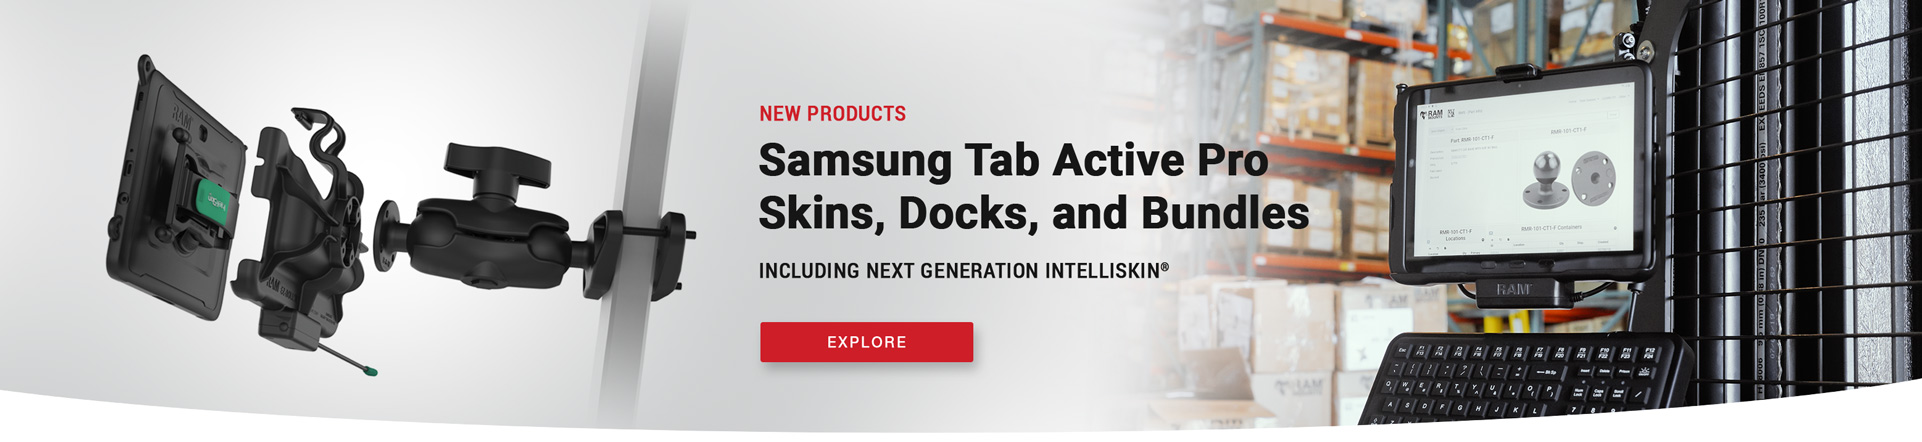 Samsung Tab Active Pro Skins, Docks, and Bundles